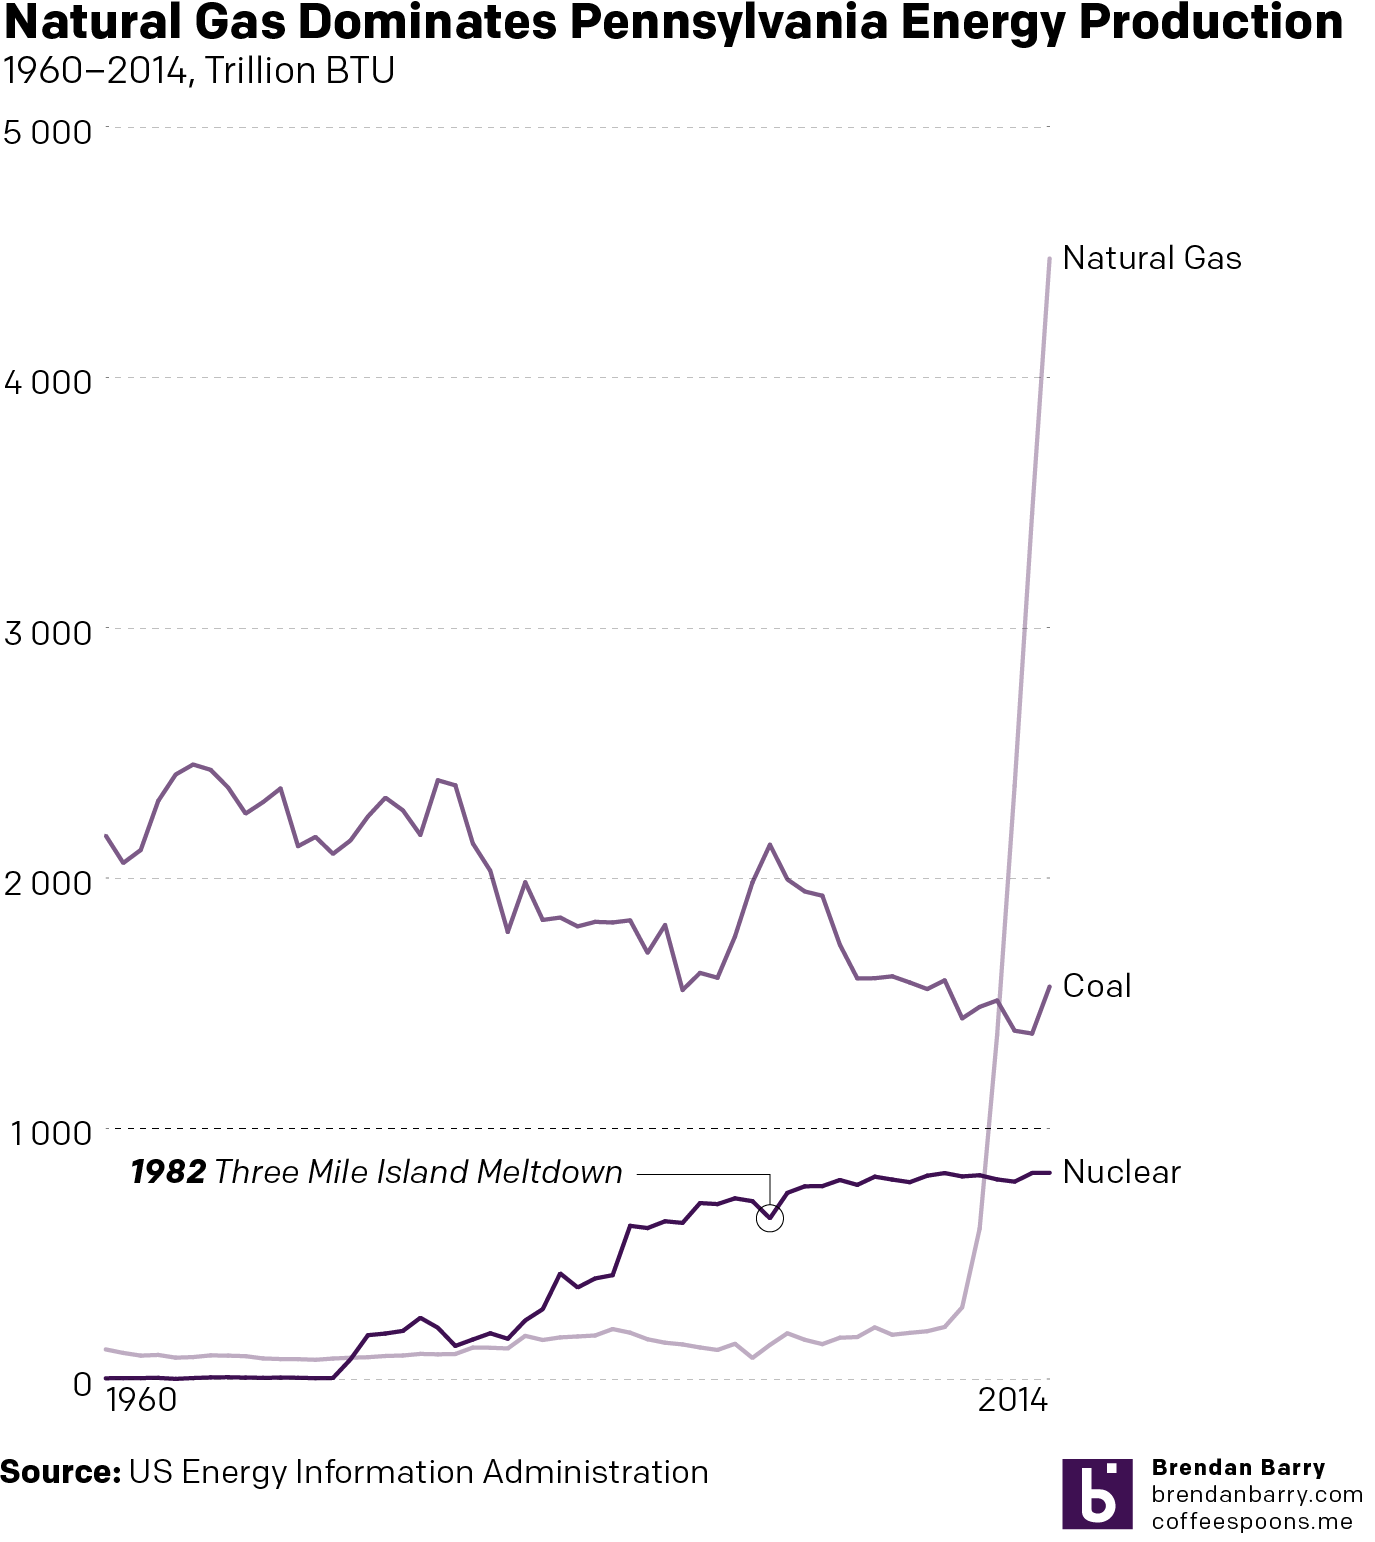 The rise of Marcellus Shale natural gas has been quick and dramatic